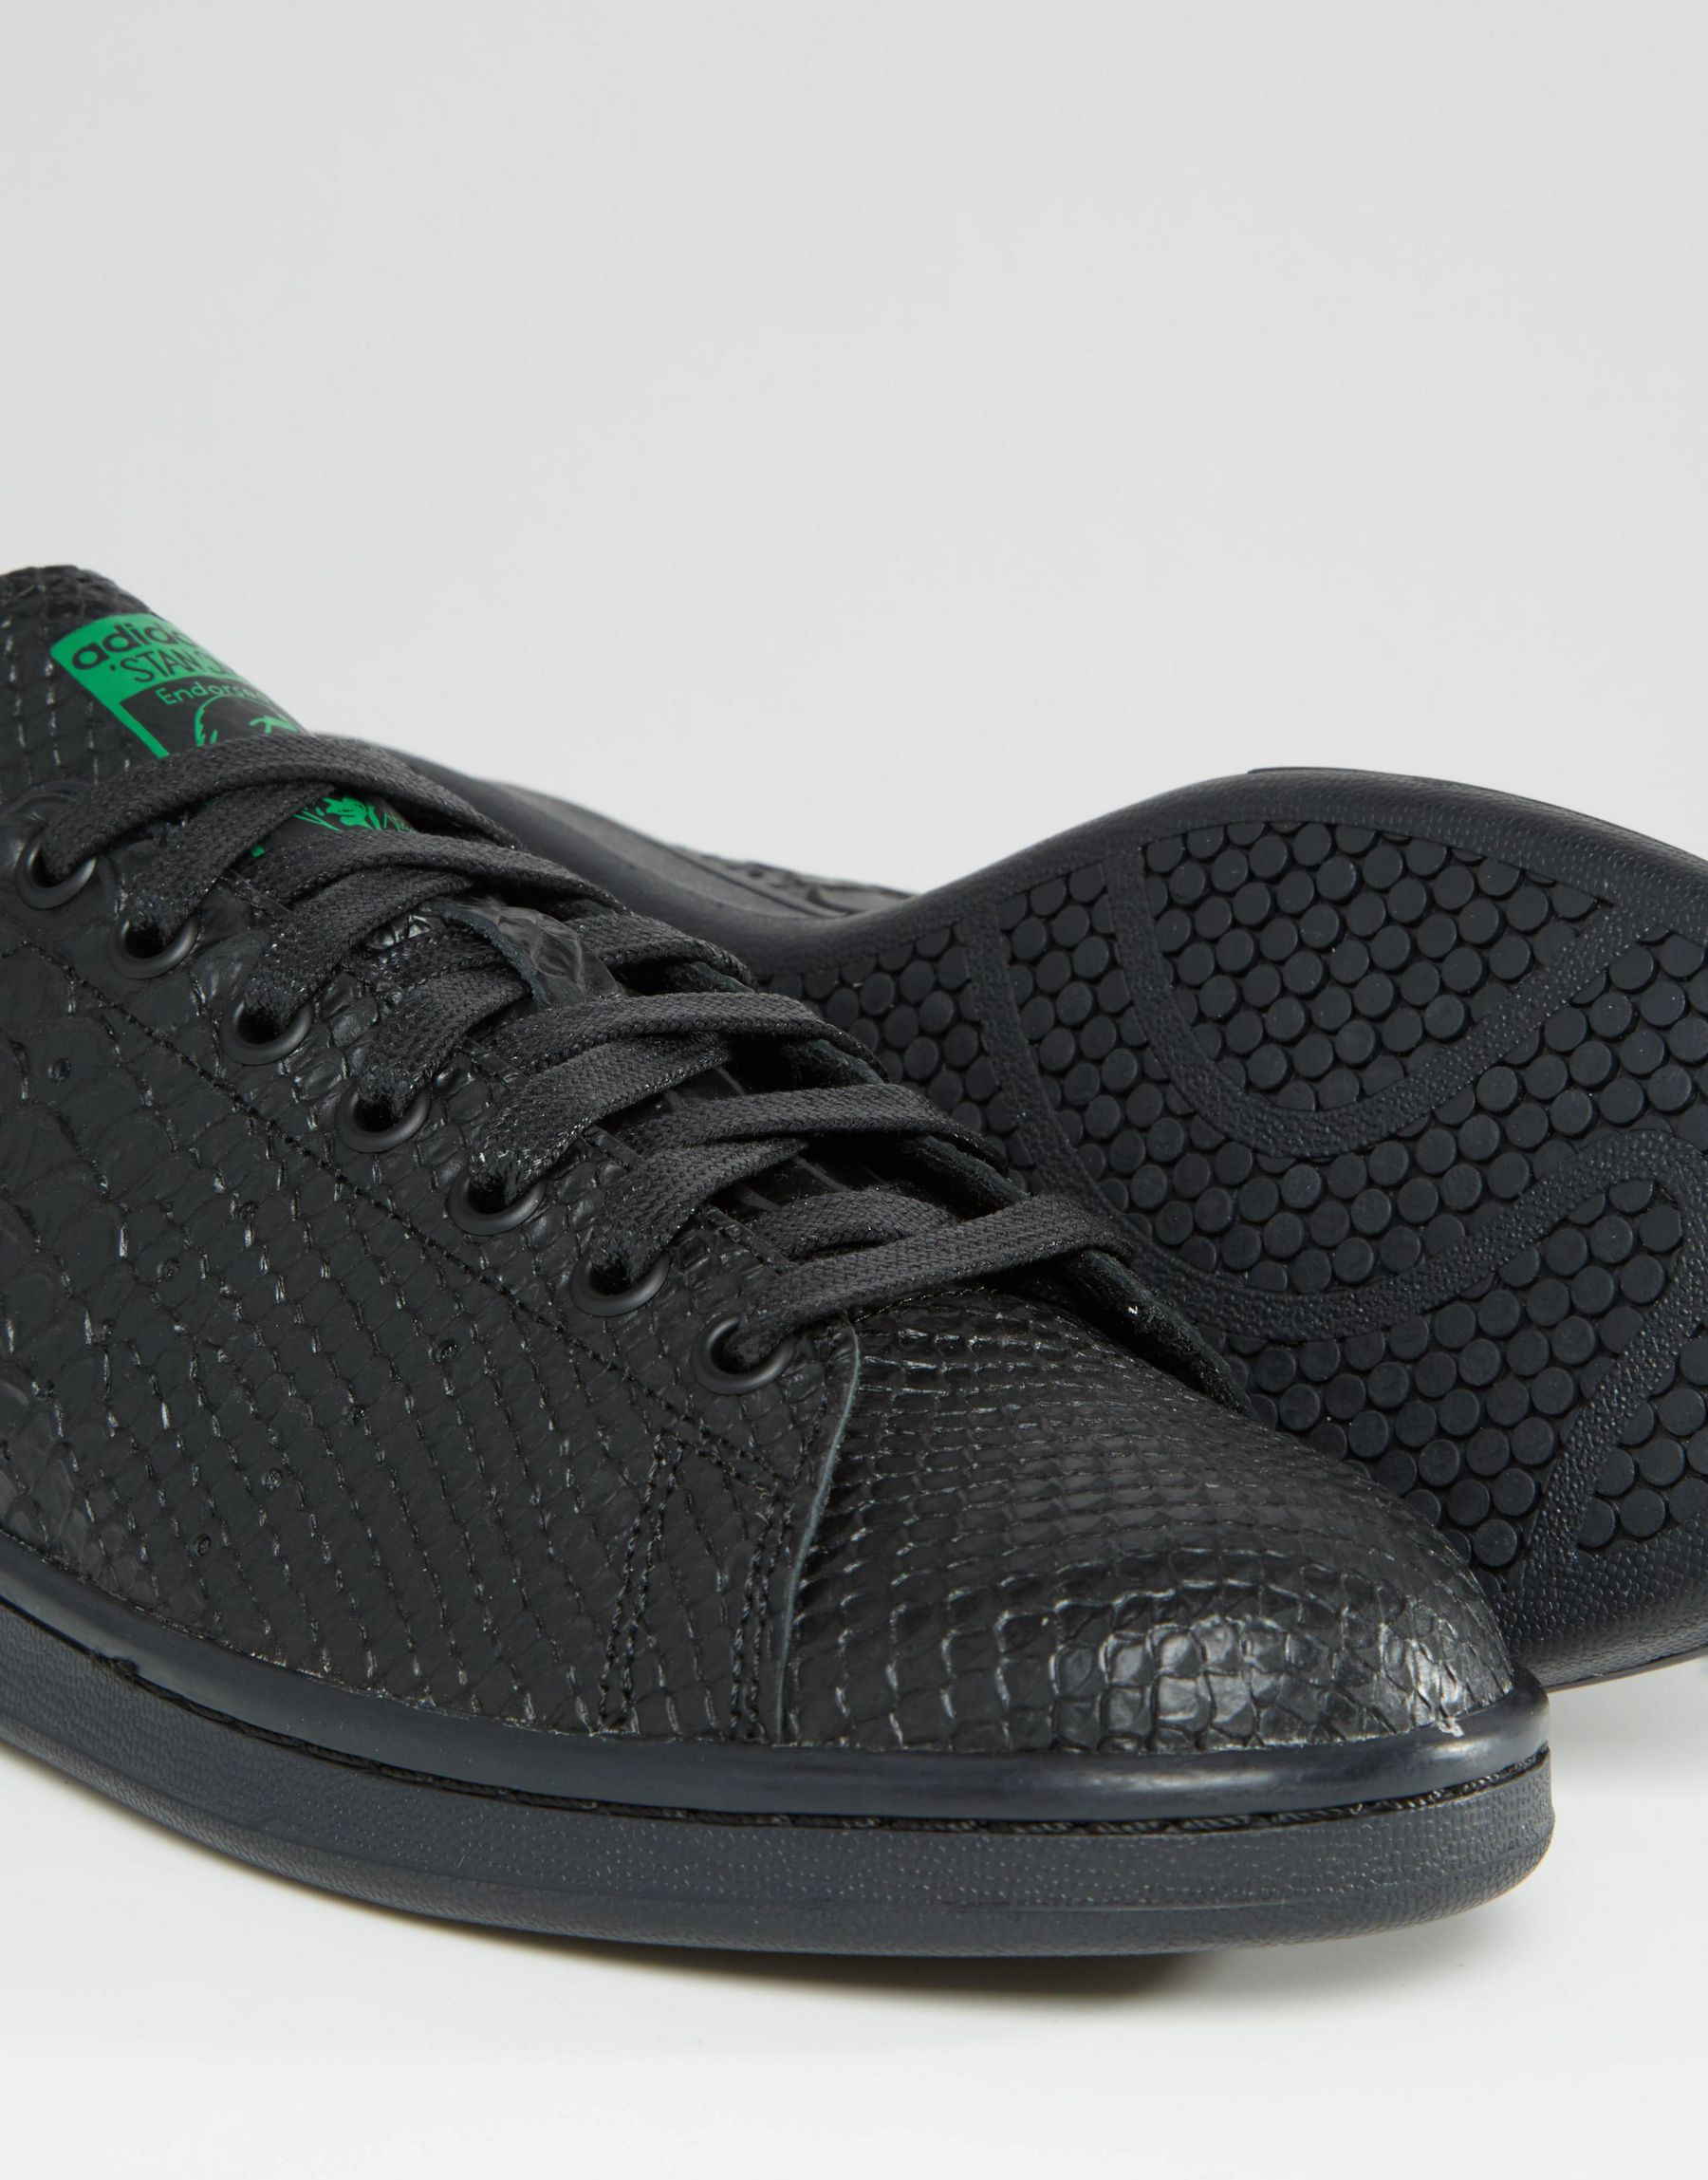 sports shoes 0bbf4 9ad91 Lyst - adidas Originals Stan Smith Snake Effect Trainers In Black S80022 -  Black in Black for Men